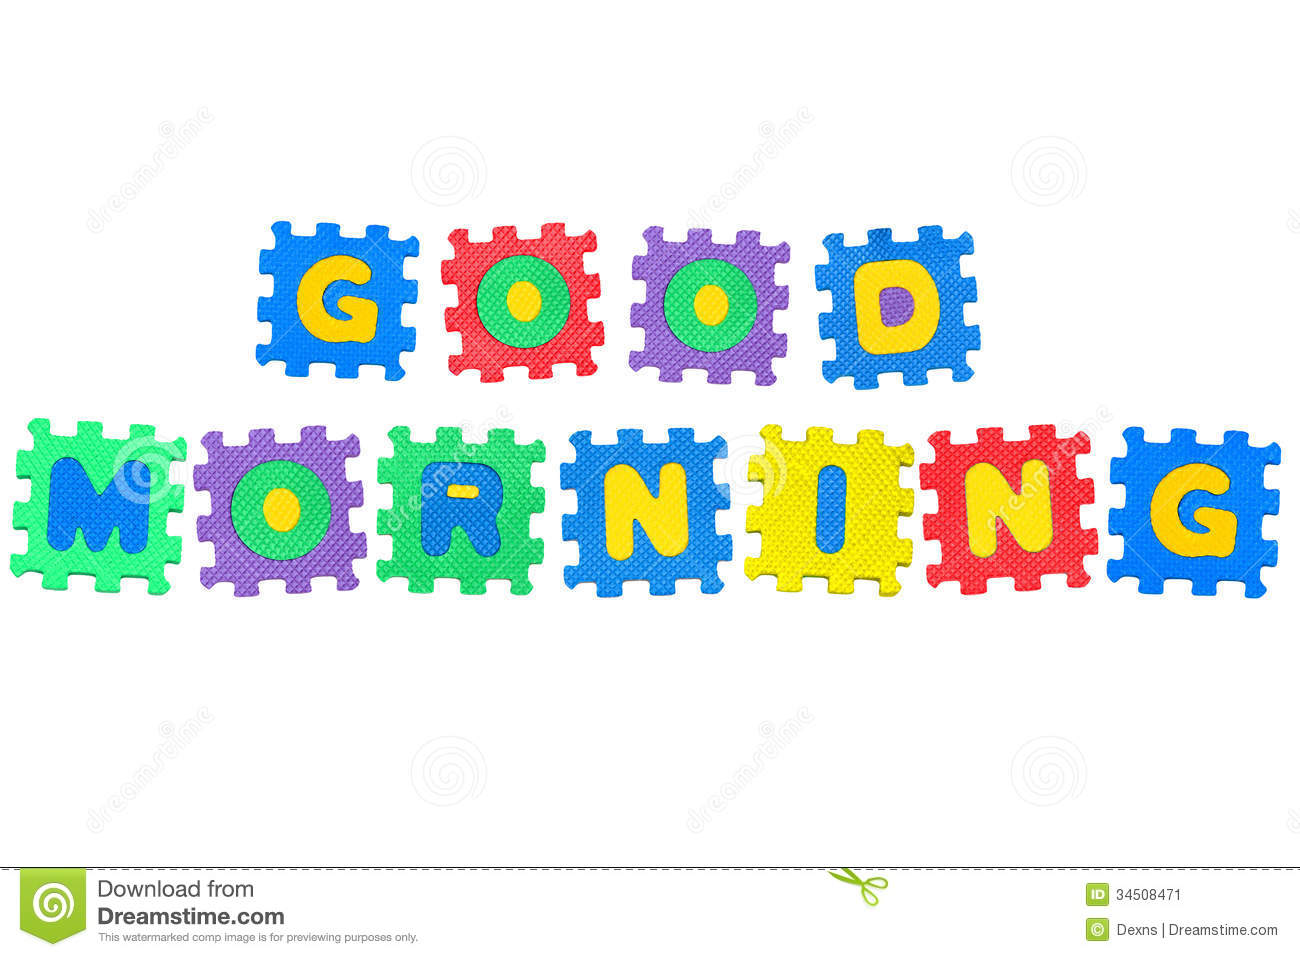 Clipart image class morning message png library library Gallery For > Class Clipart Morning Message png library library